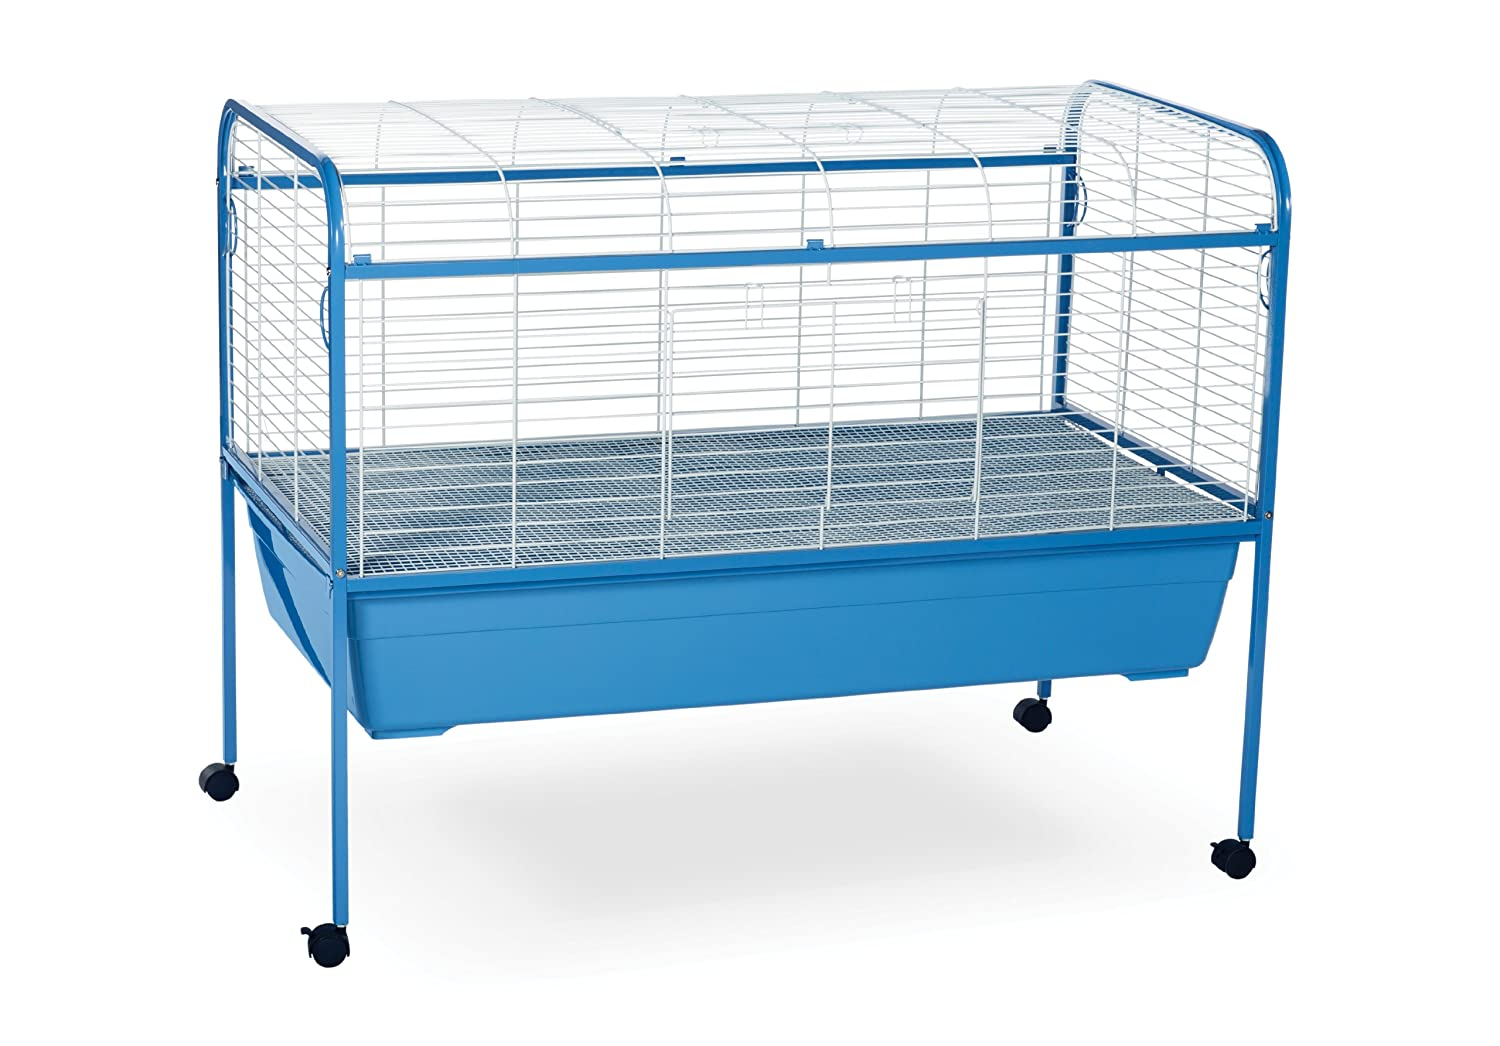 Famous Amazon.com : Prevue Pet Products Small Animal Cage with Stand 620  BV21